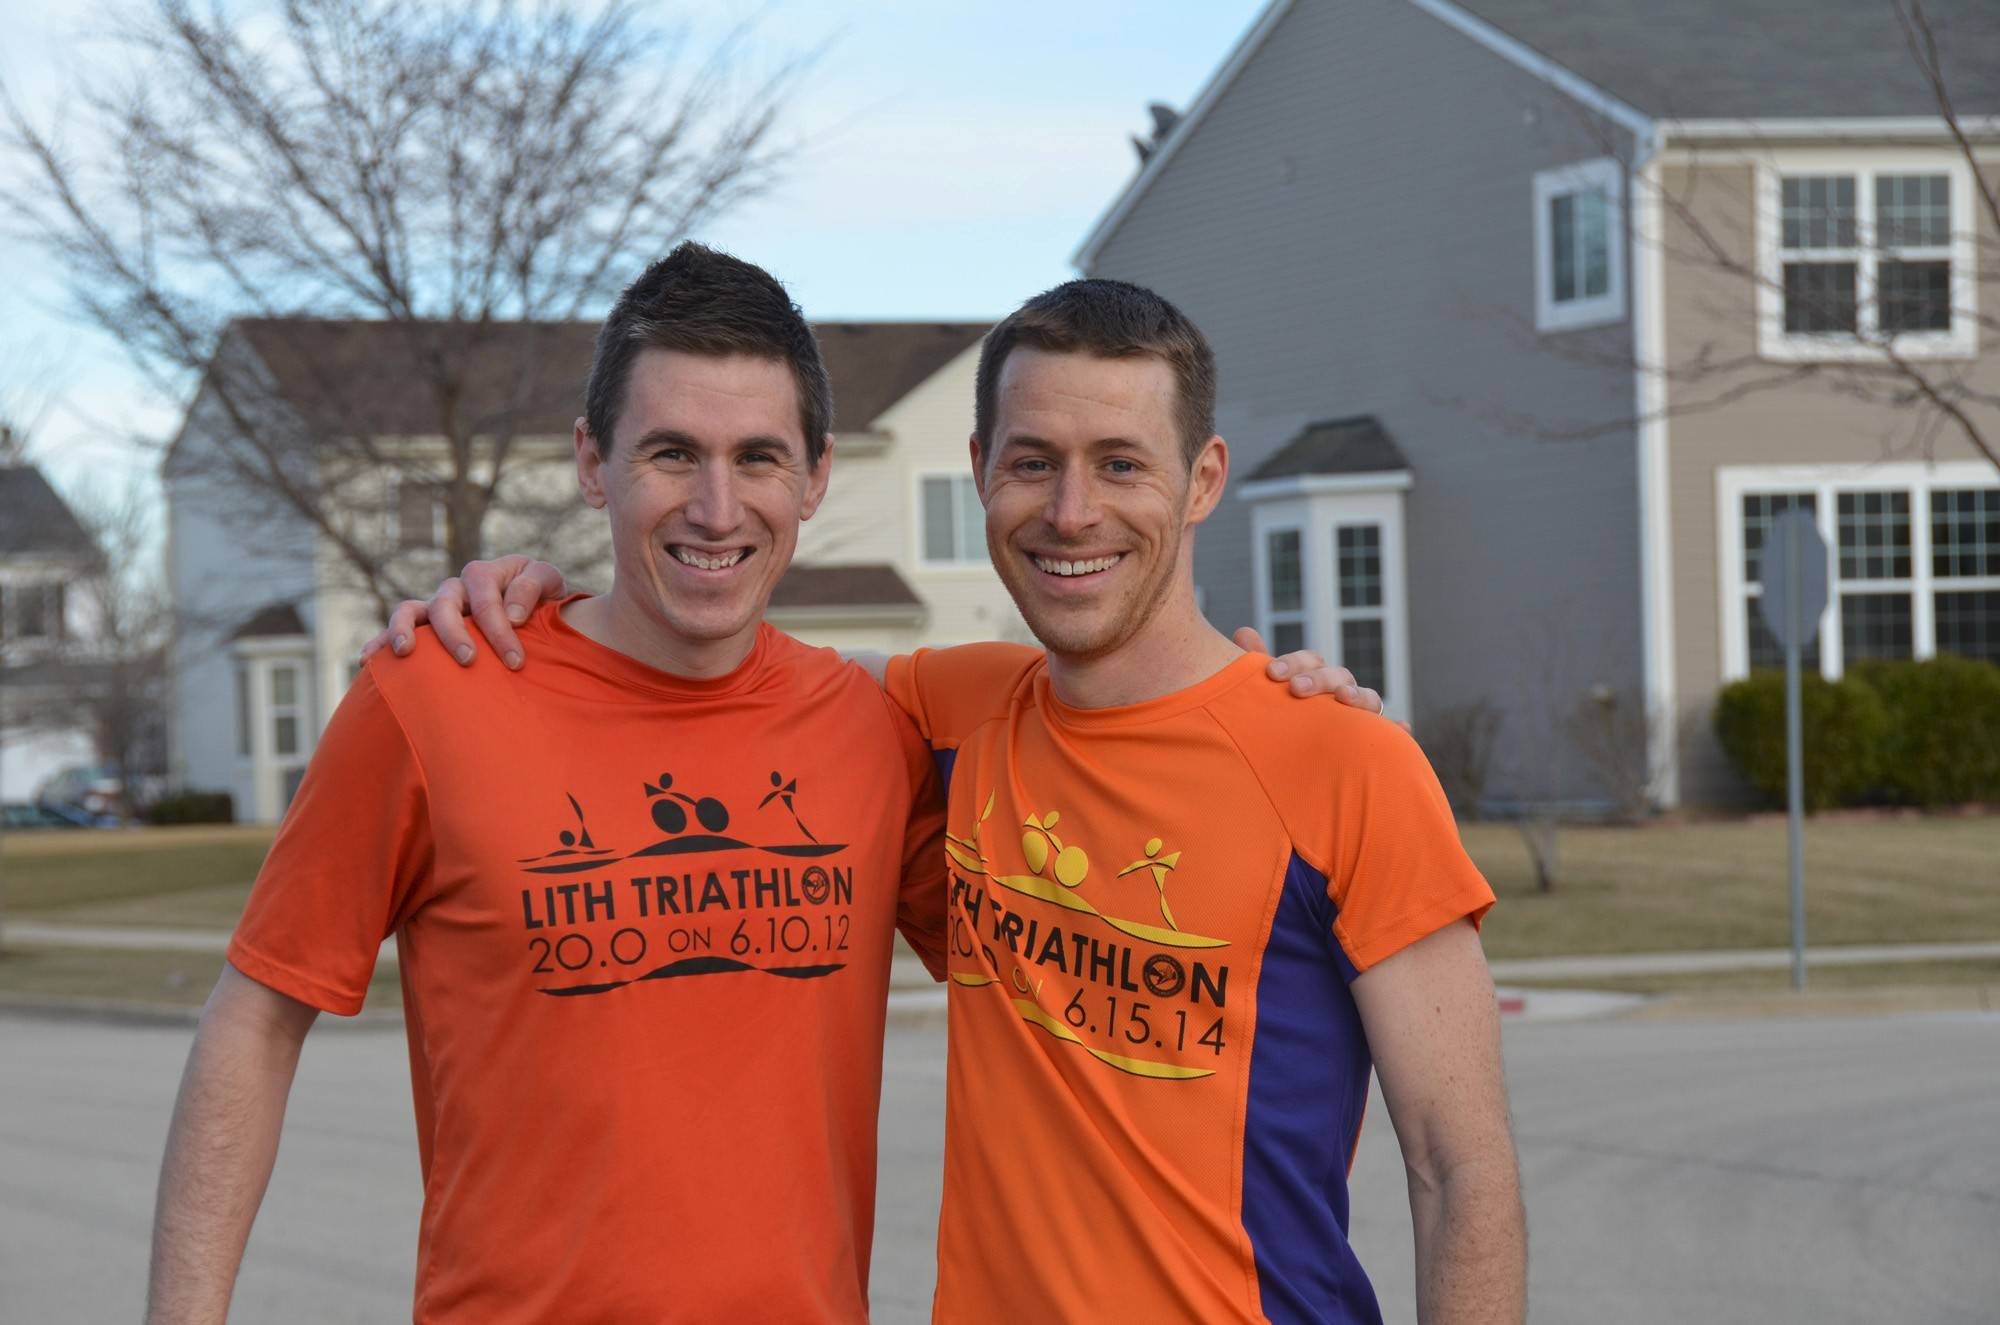 Huntley residents Matt Kidd, left, and Shane Firsching have been co-race directors of the Lake in the Hills Triathlon for the past four years. They took over organizing the event after an outside event organizer had backed out. This year's race is Sunday.